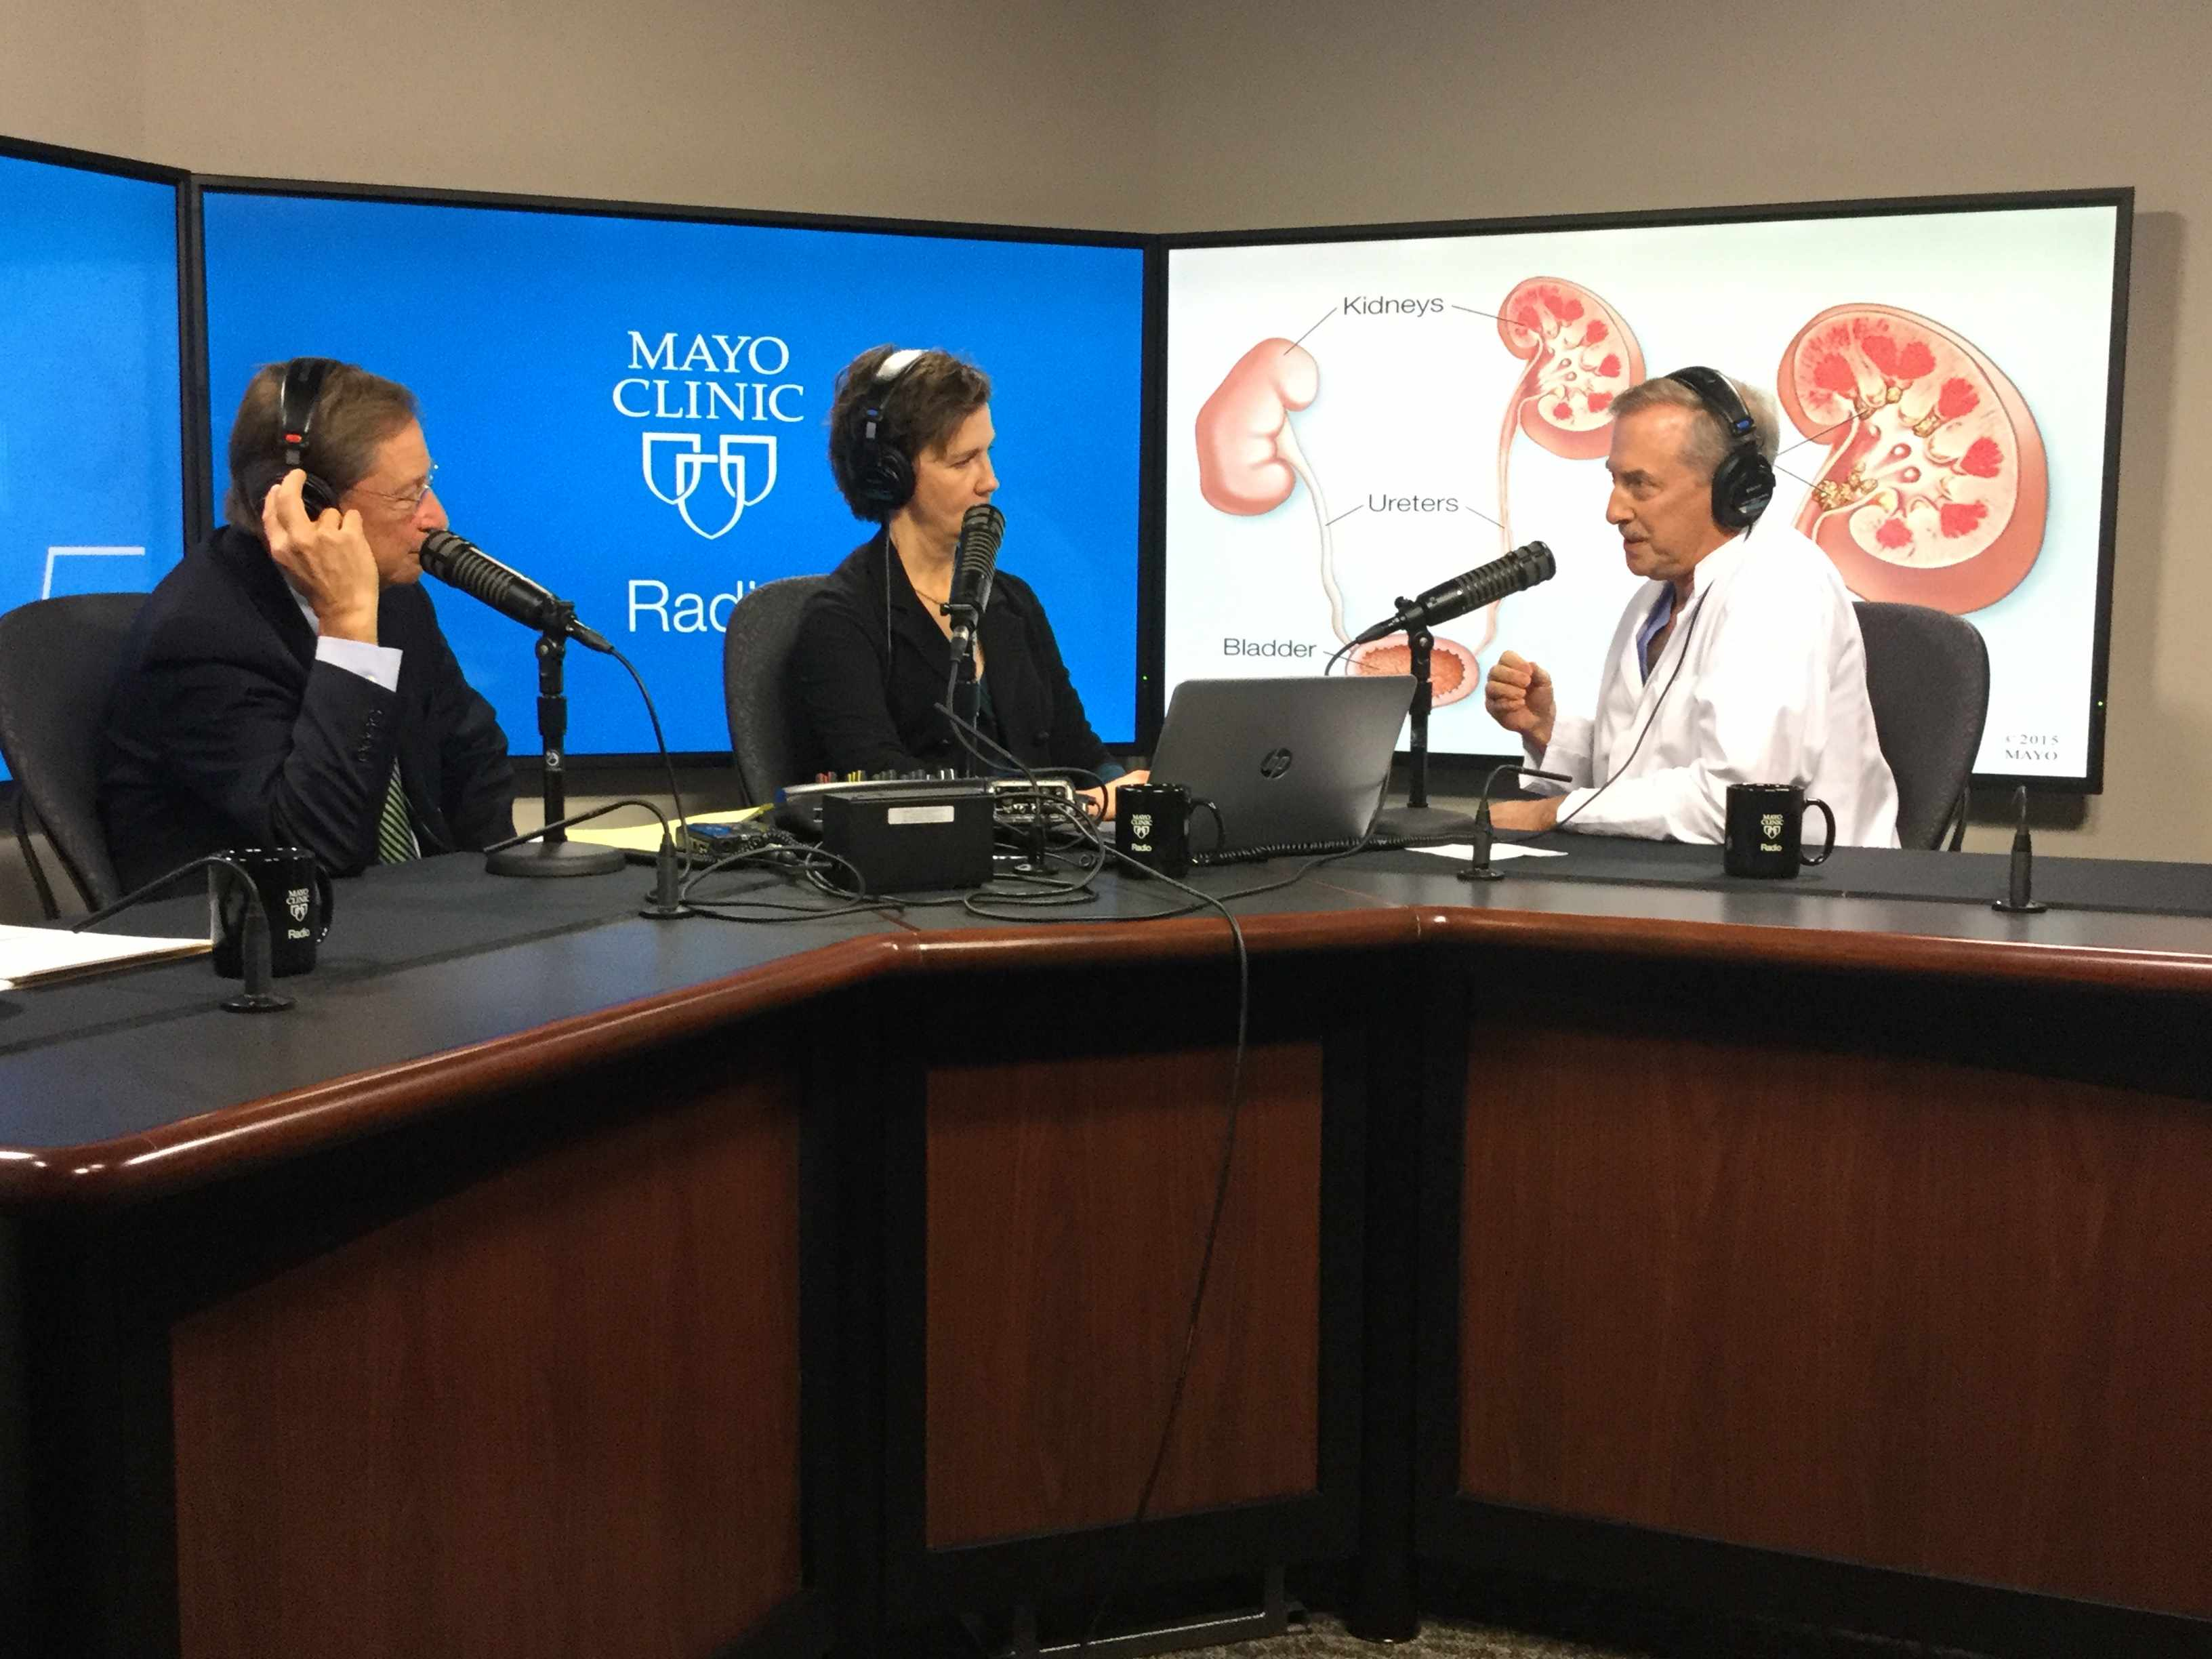 Dr. David Patterson being interviewed on Mayo Clinic Radio